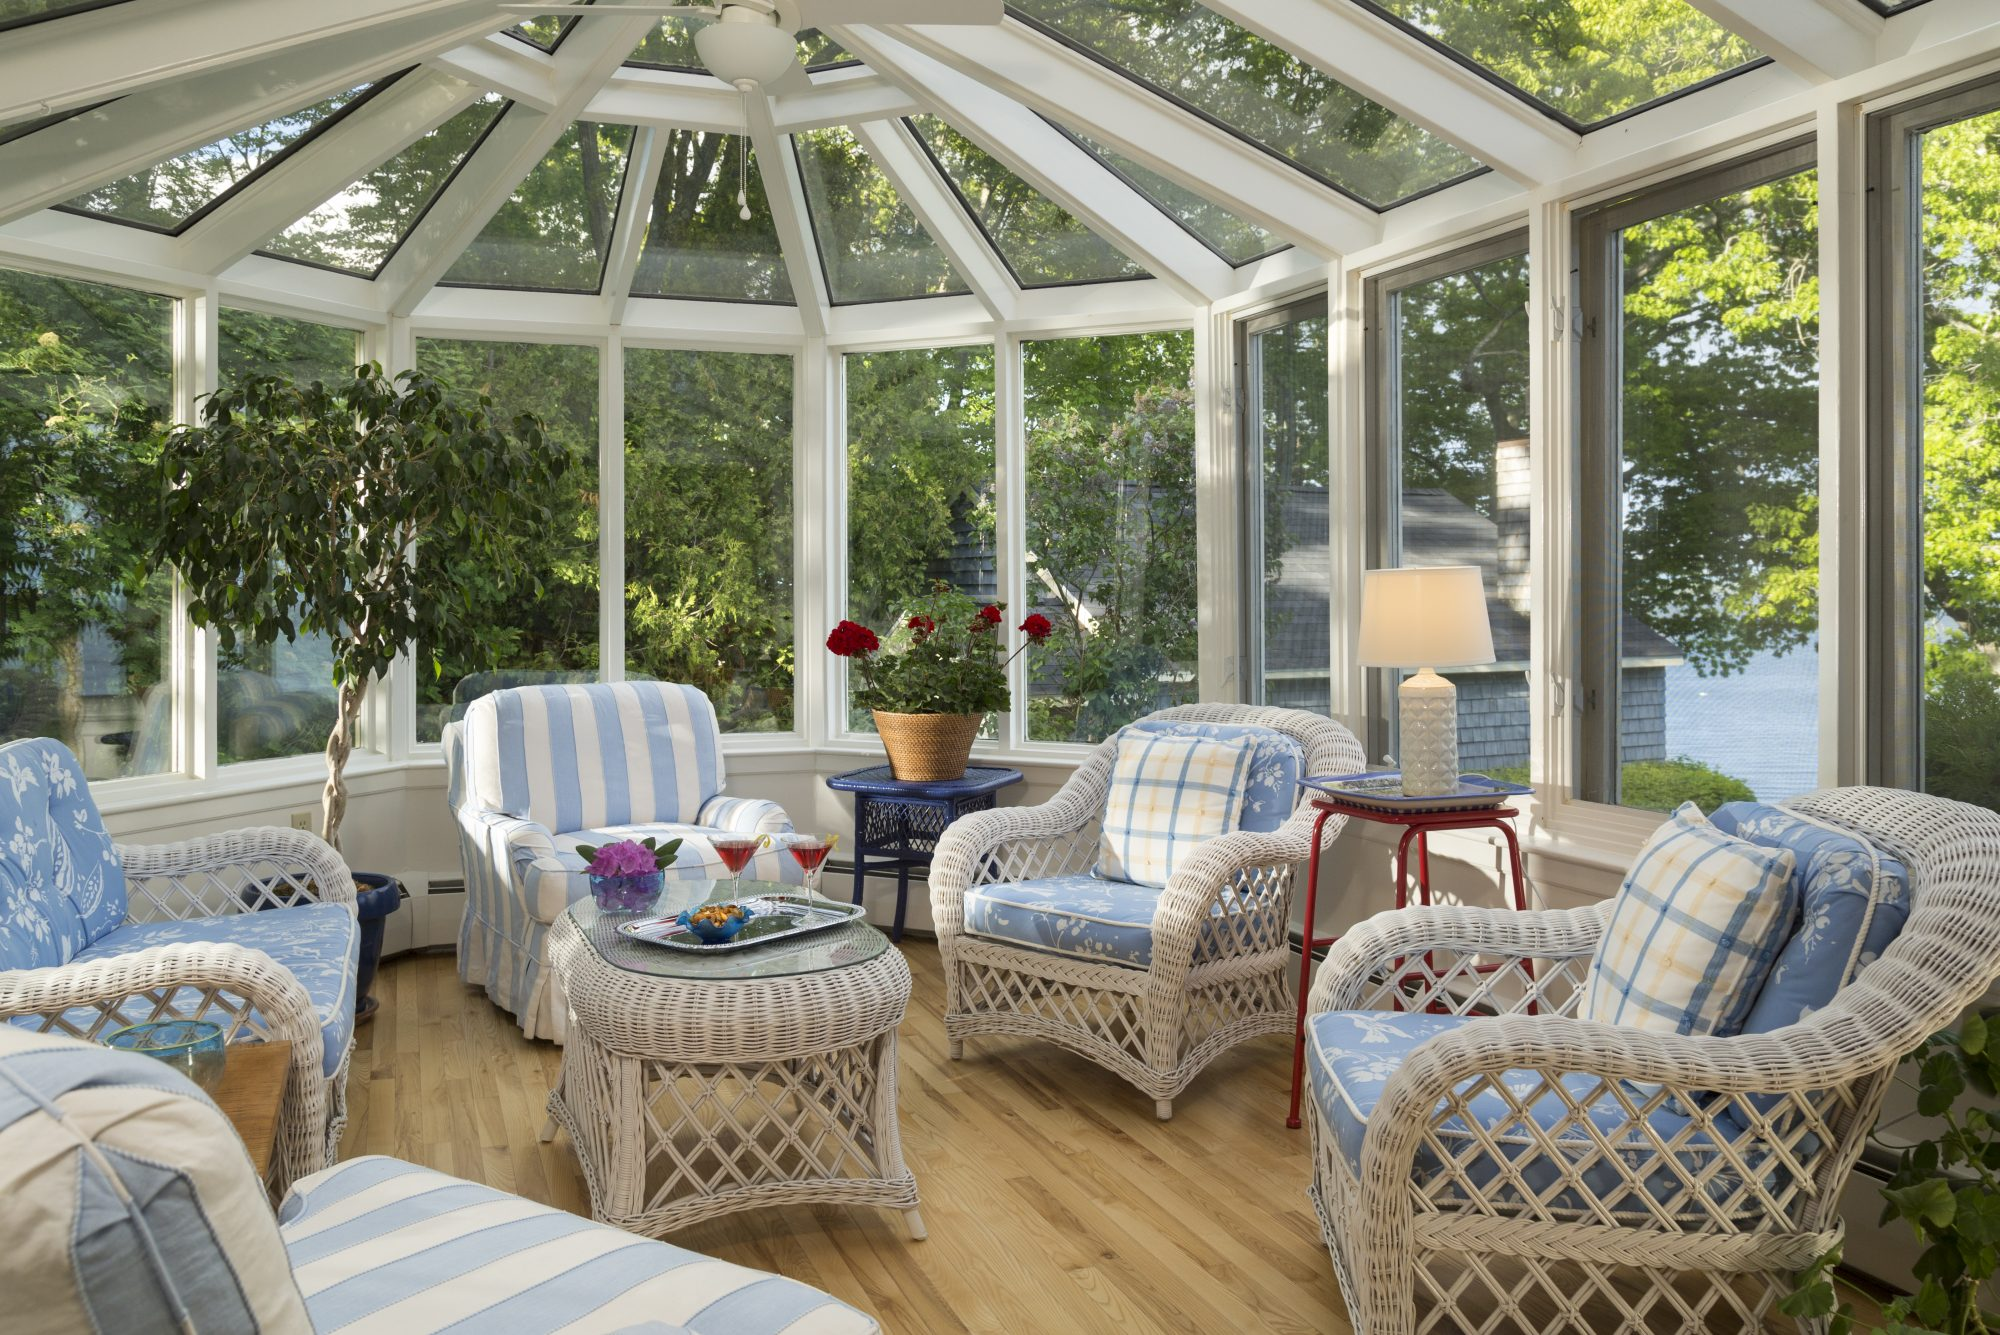 Florida Room With Glass Ceiling